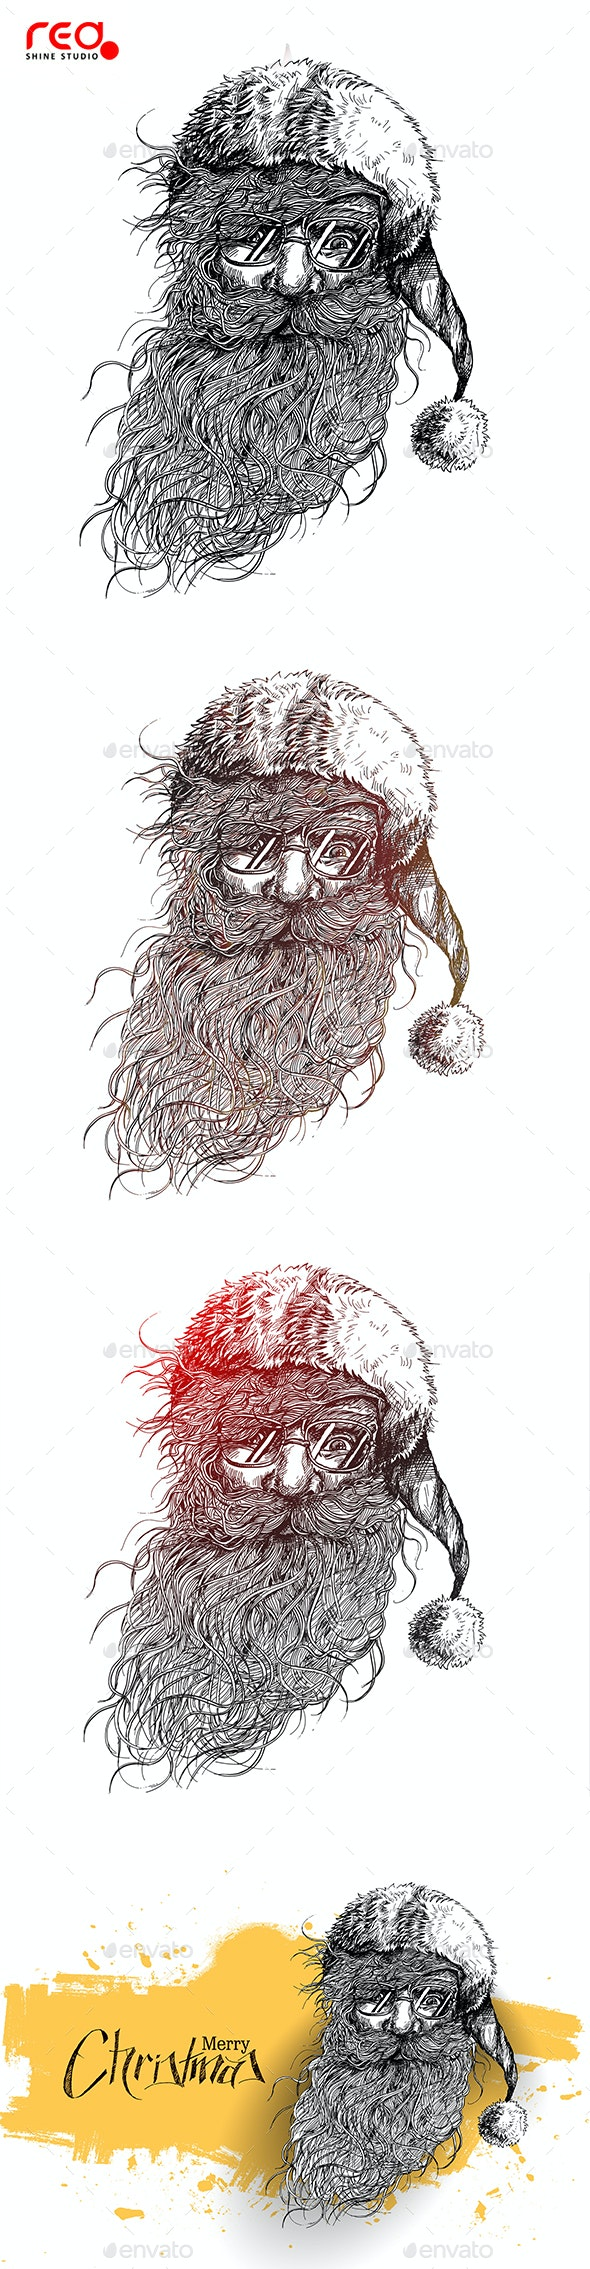 Santa Claus Face Sketch - Christmas Seasons/Holidays